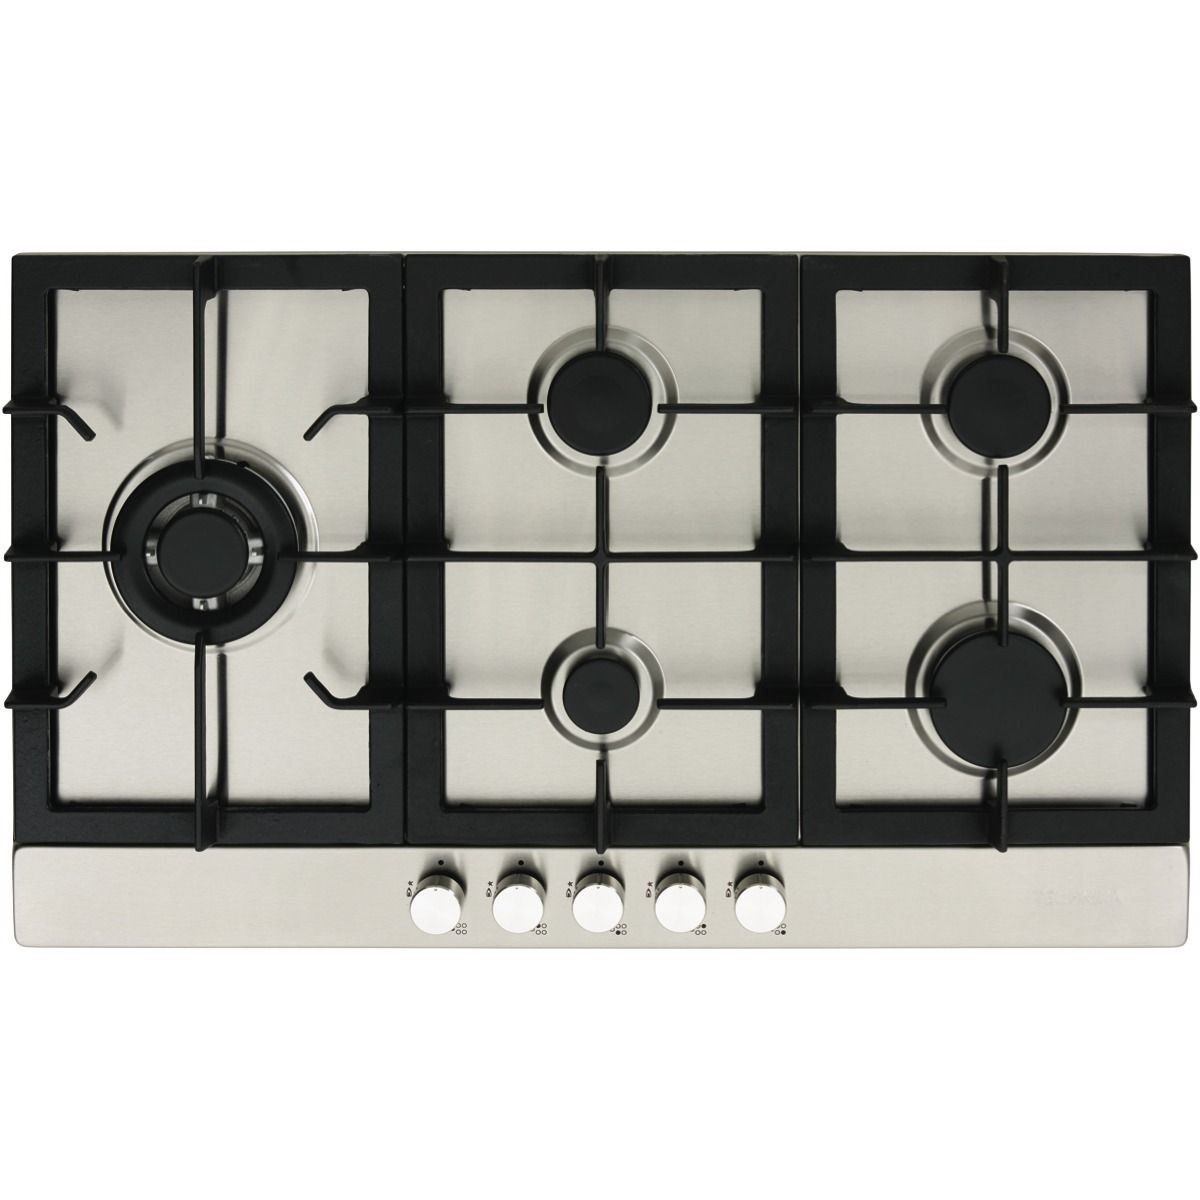 Technika Tgc9glwss 90cm Gas Cooktop At The Good Guys Gas Cooktop